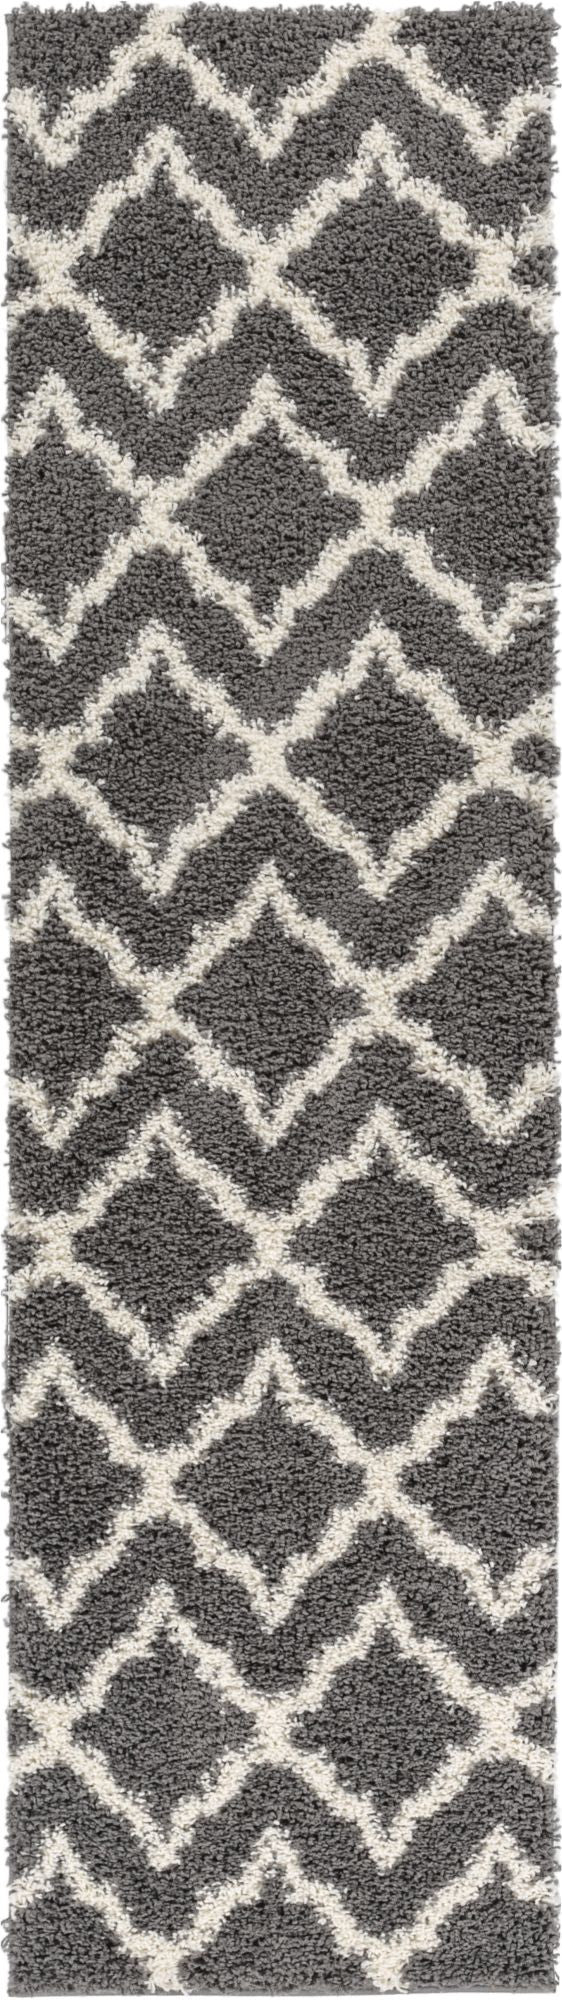 Linx Geometric Grey Modern Rug Well Woven